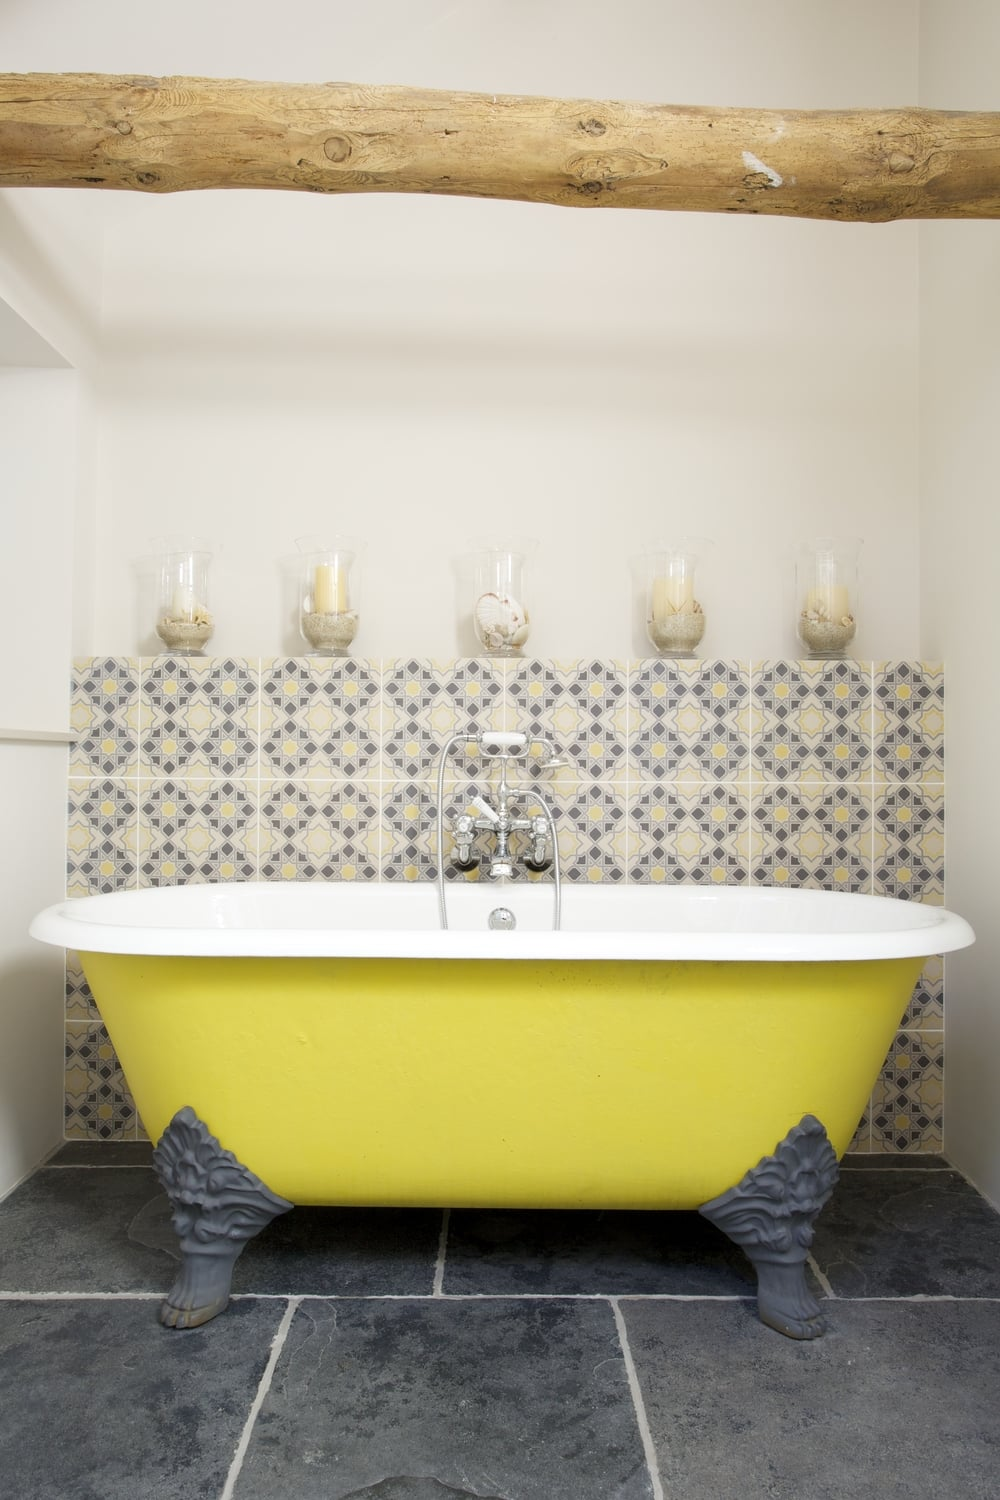 Colour pop bath tub!